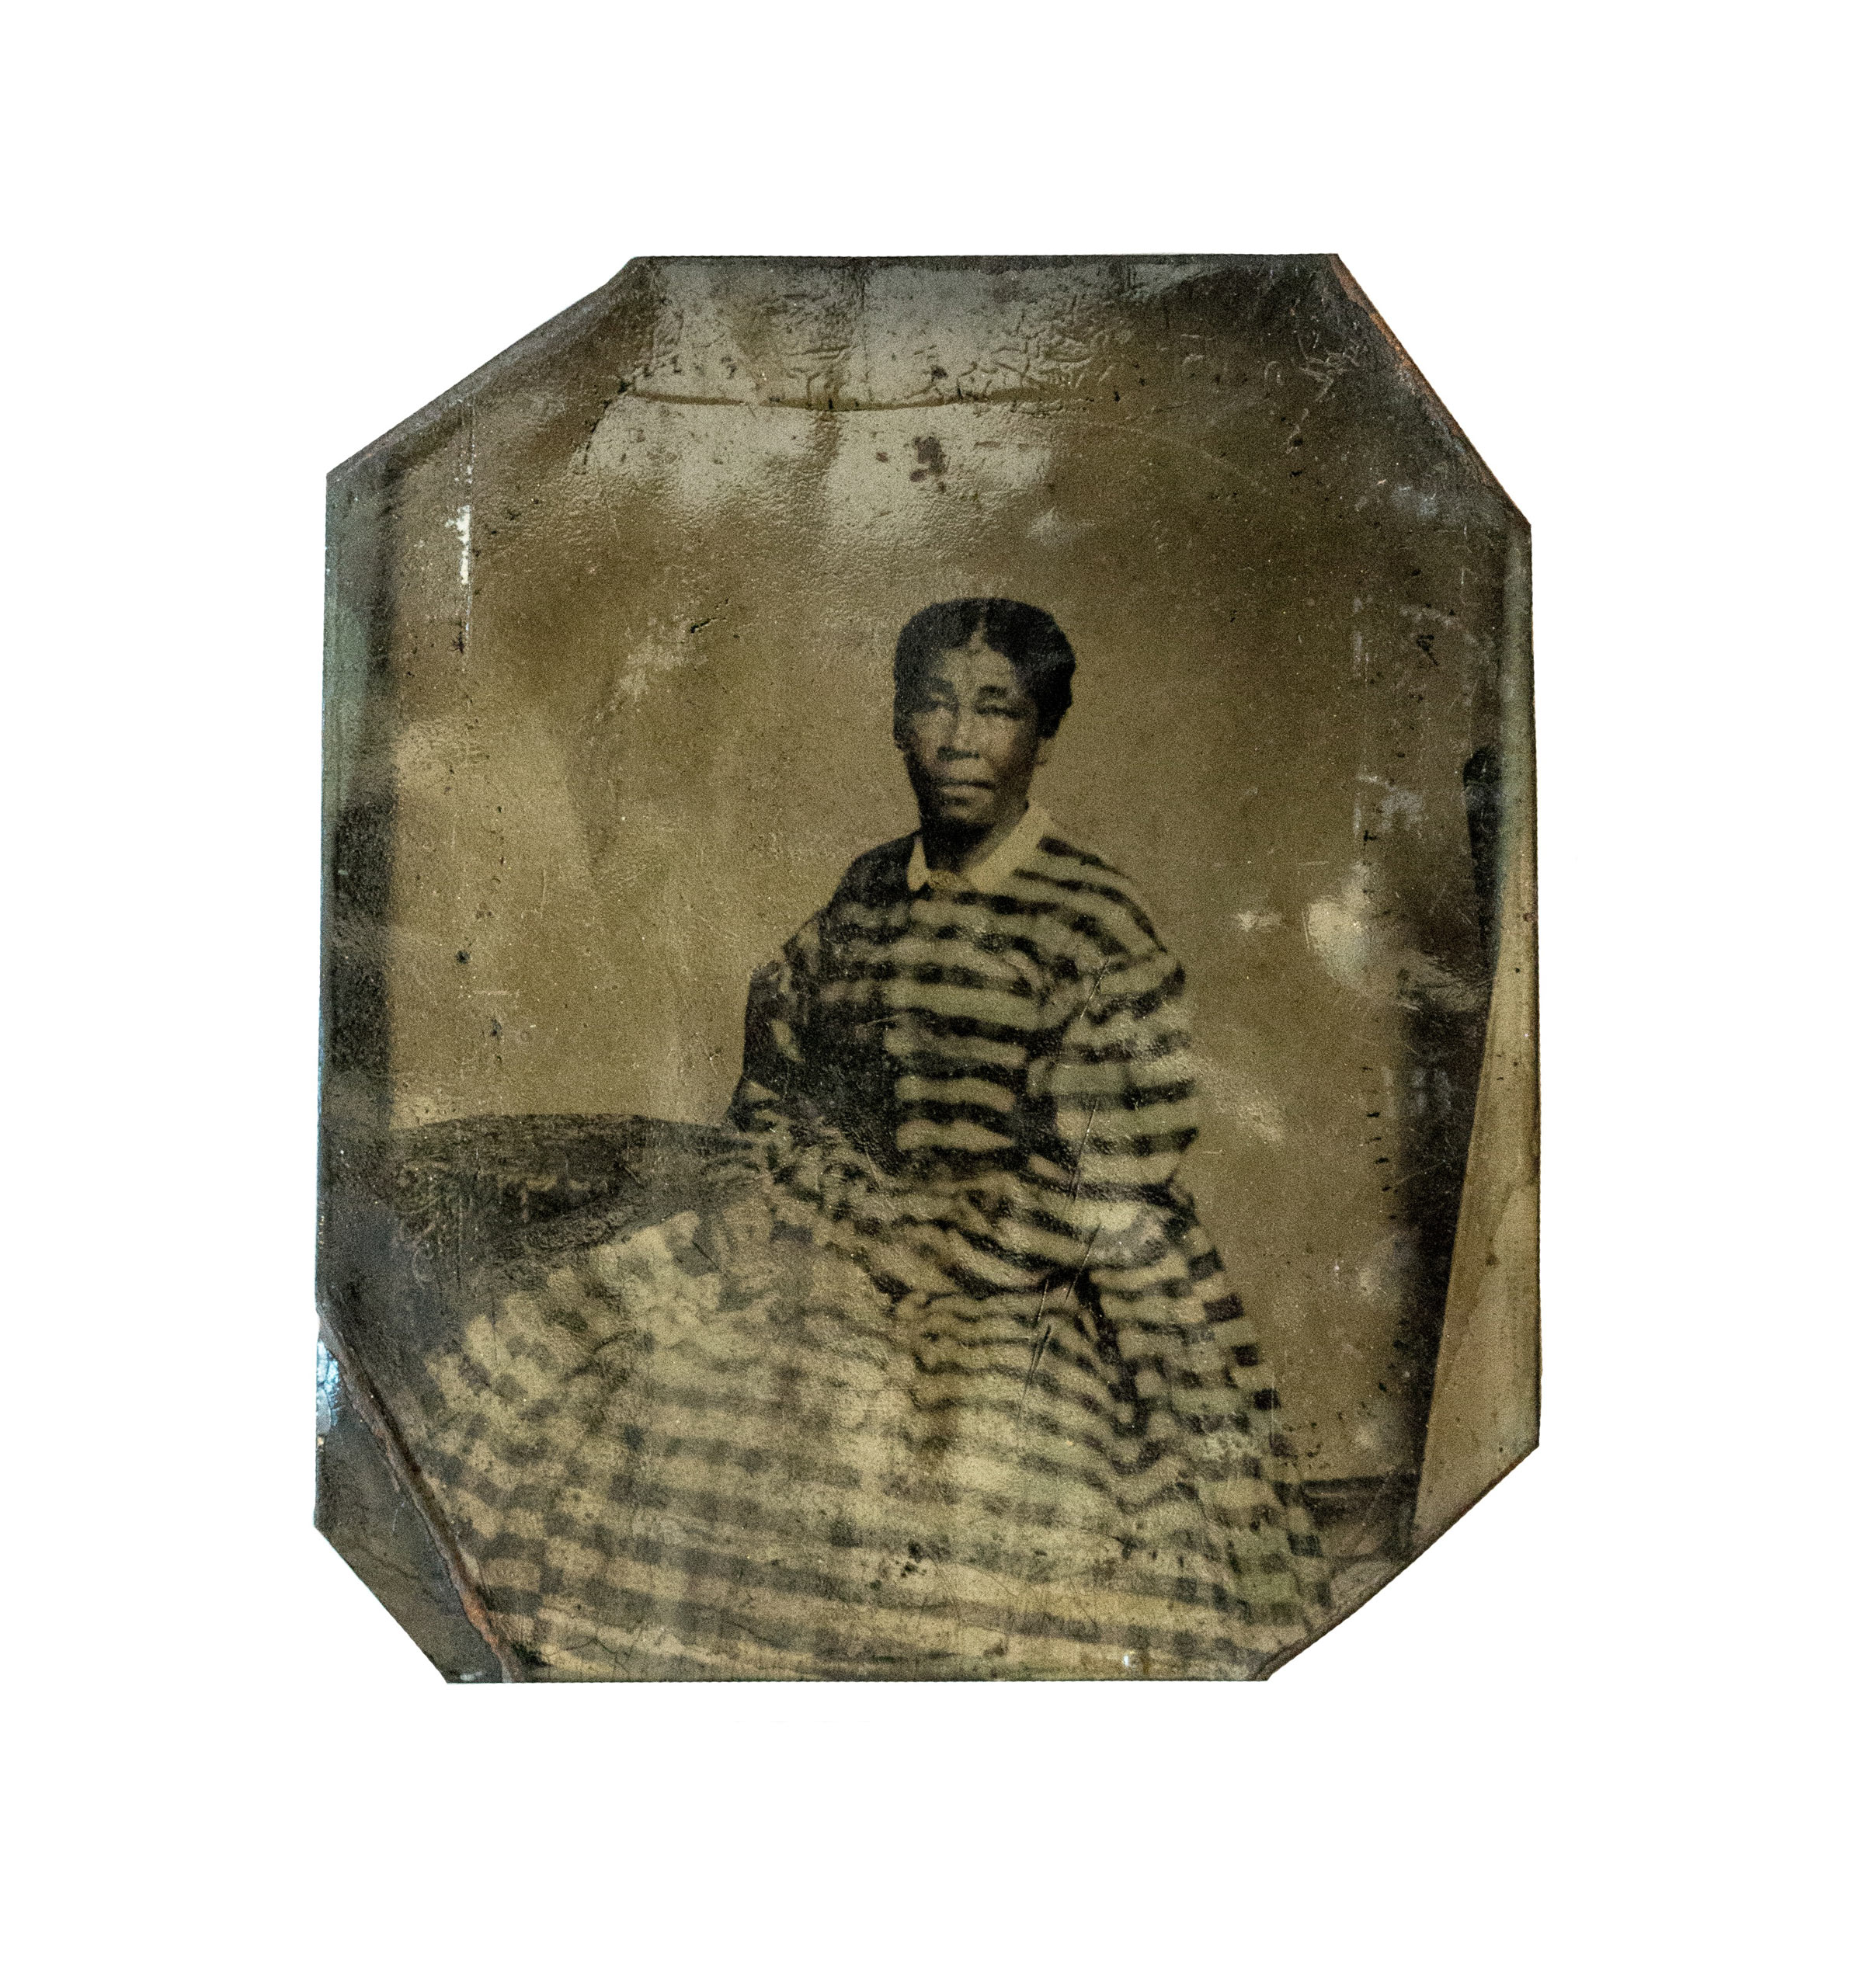 Esther J. Green appears to be living in the Eastville section of the village of Sag Harbor, N.Y., along with her husband. Green was born on Shelter Island, N.Y. in 1823.